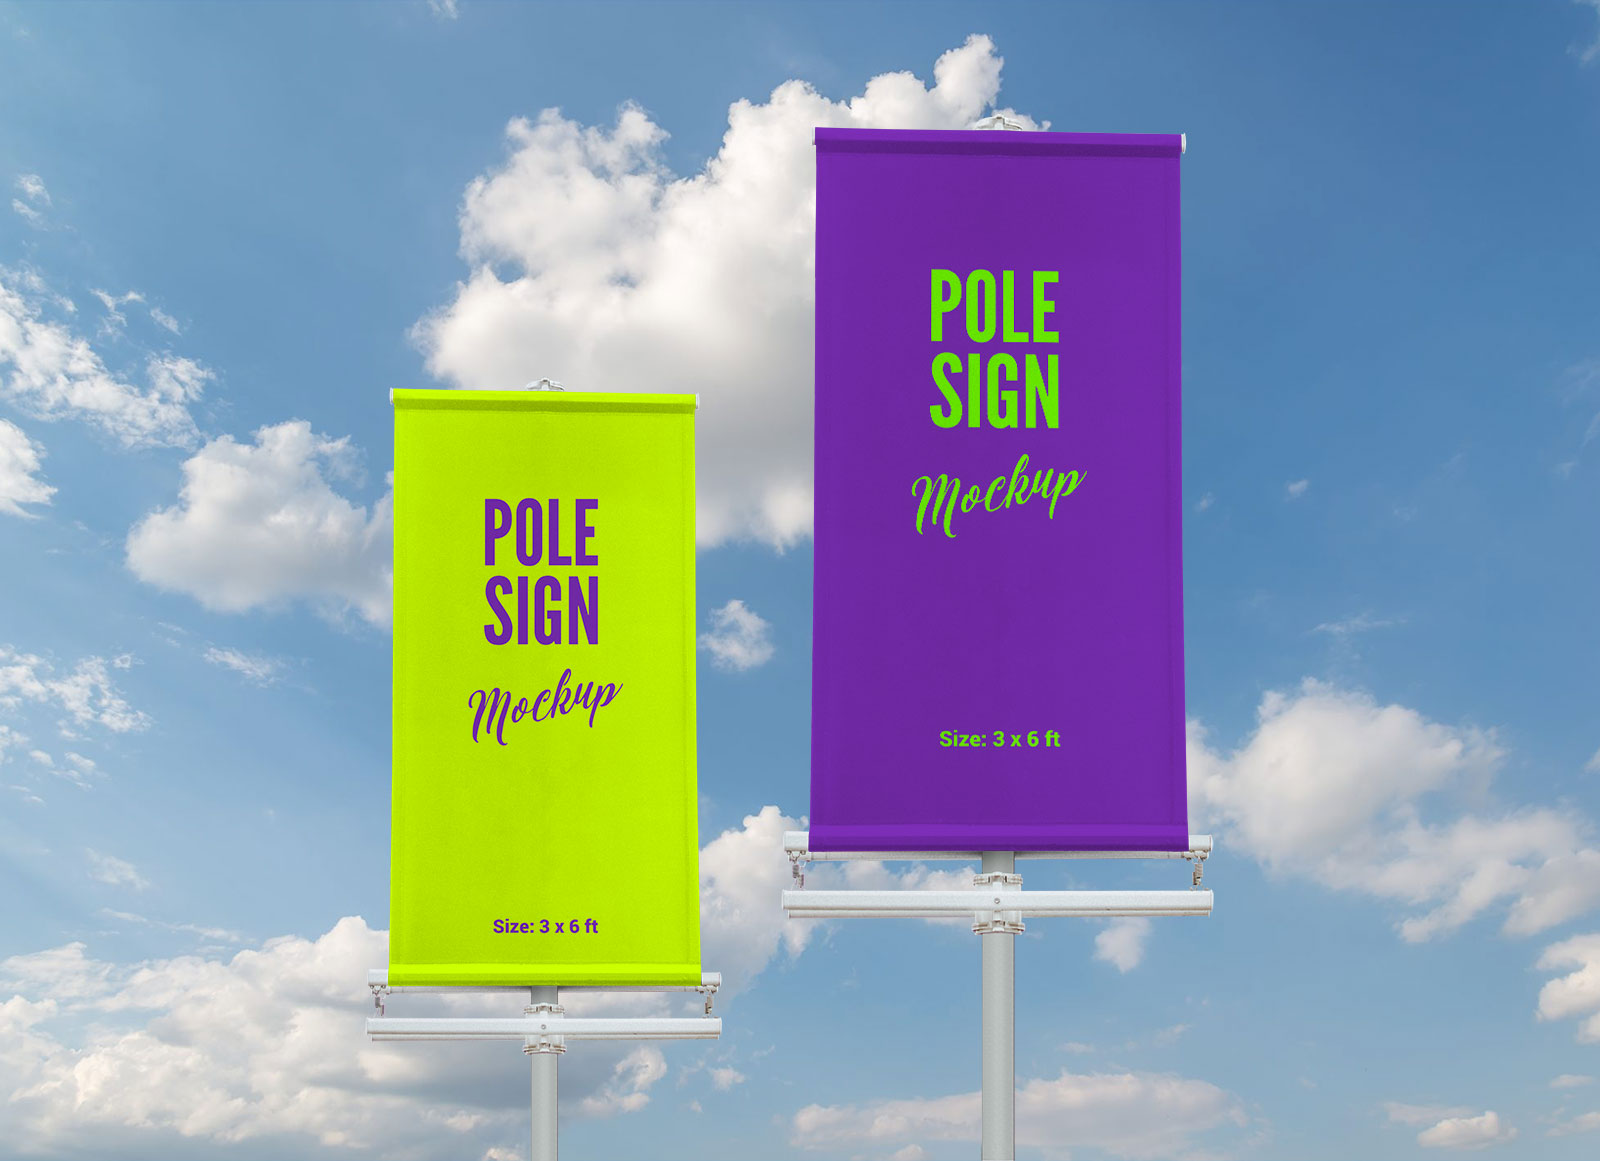 Free-Outdoor-Advertising-Modern-Pole-Sign-Mockup-PSD